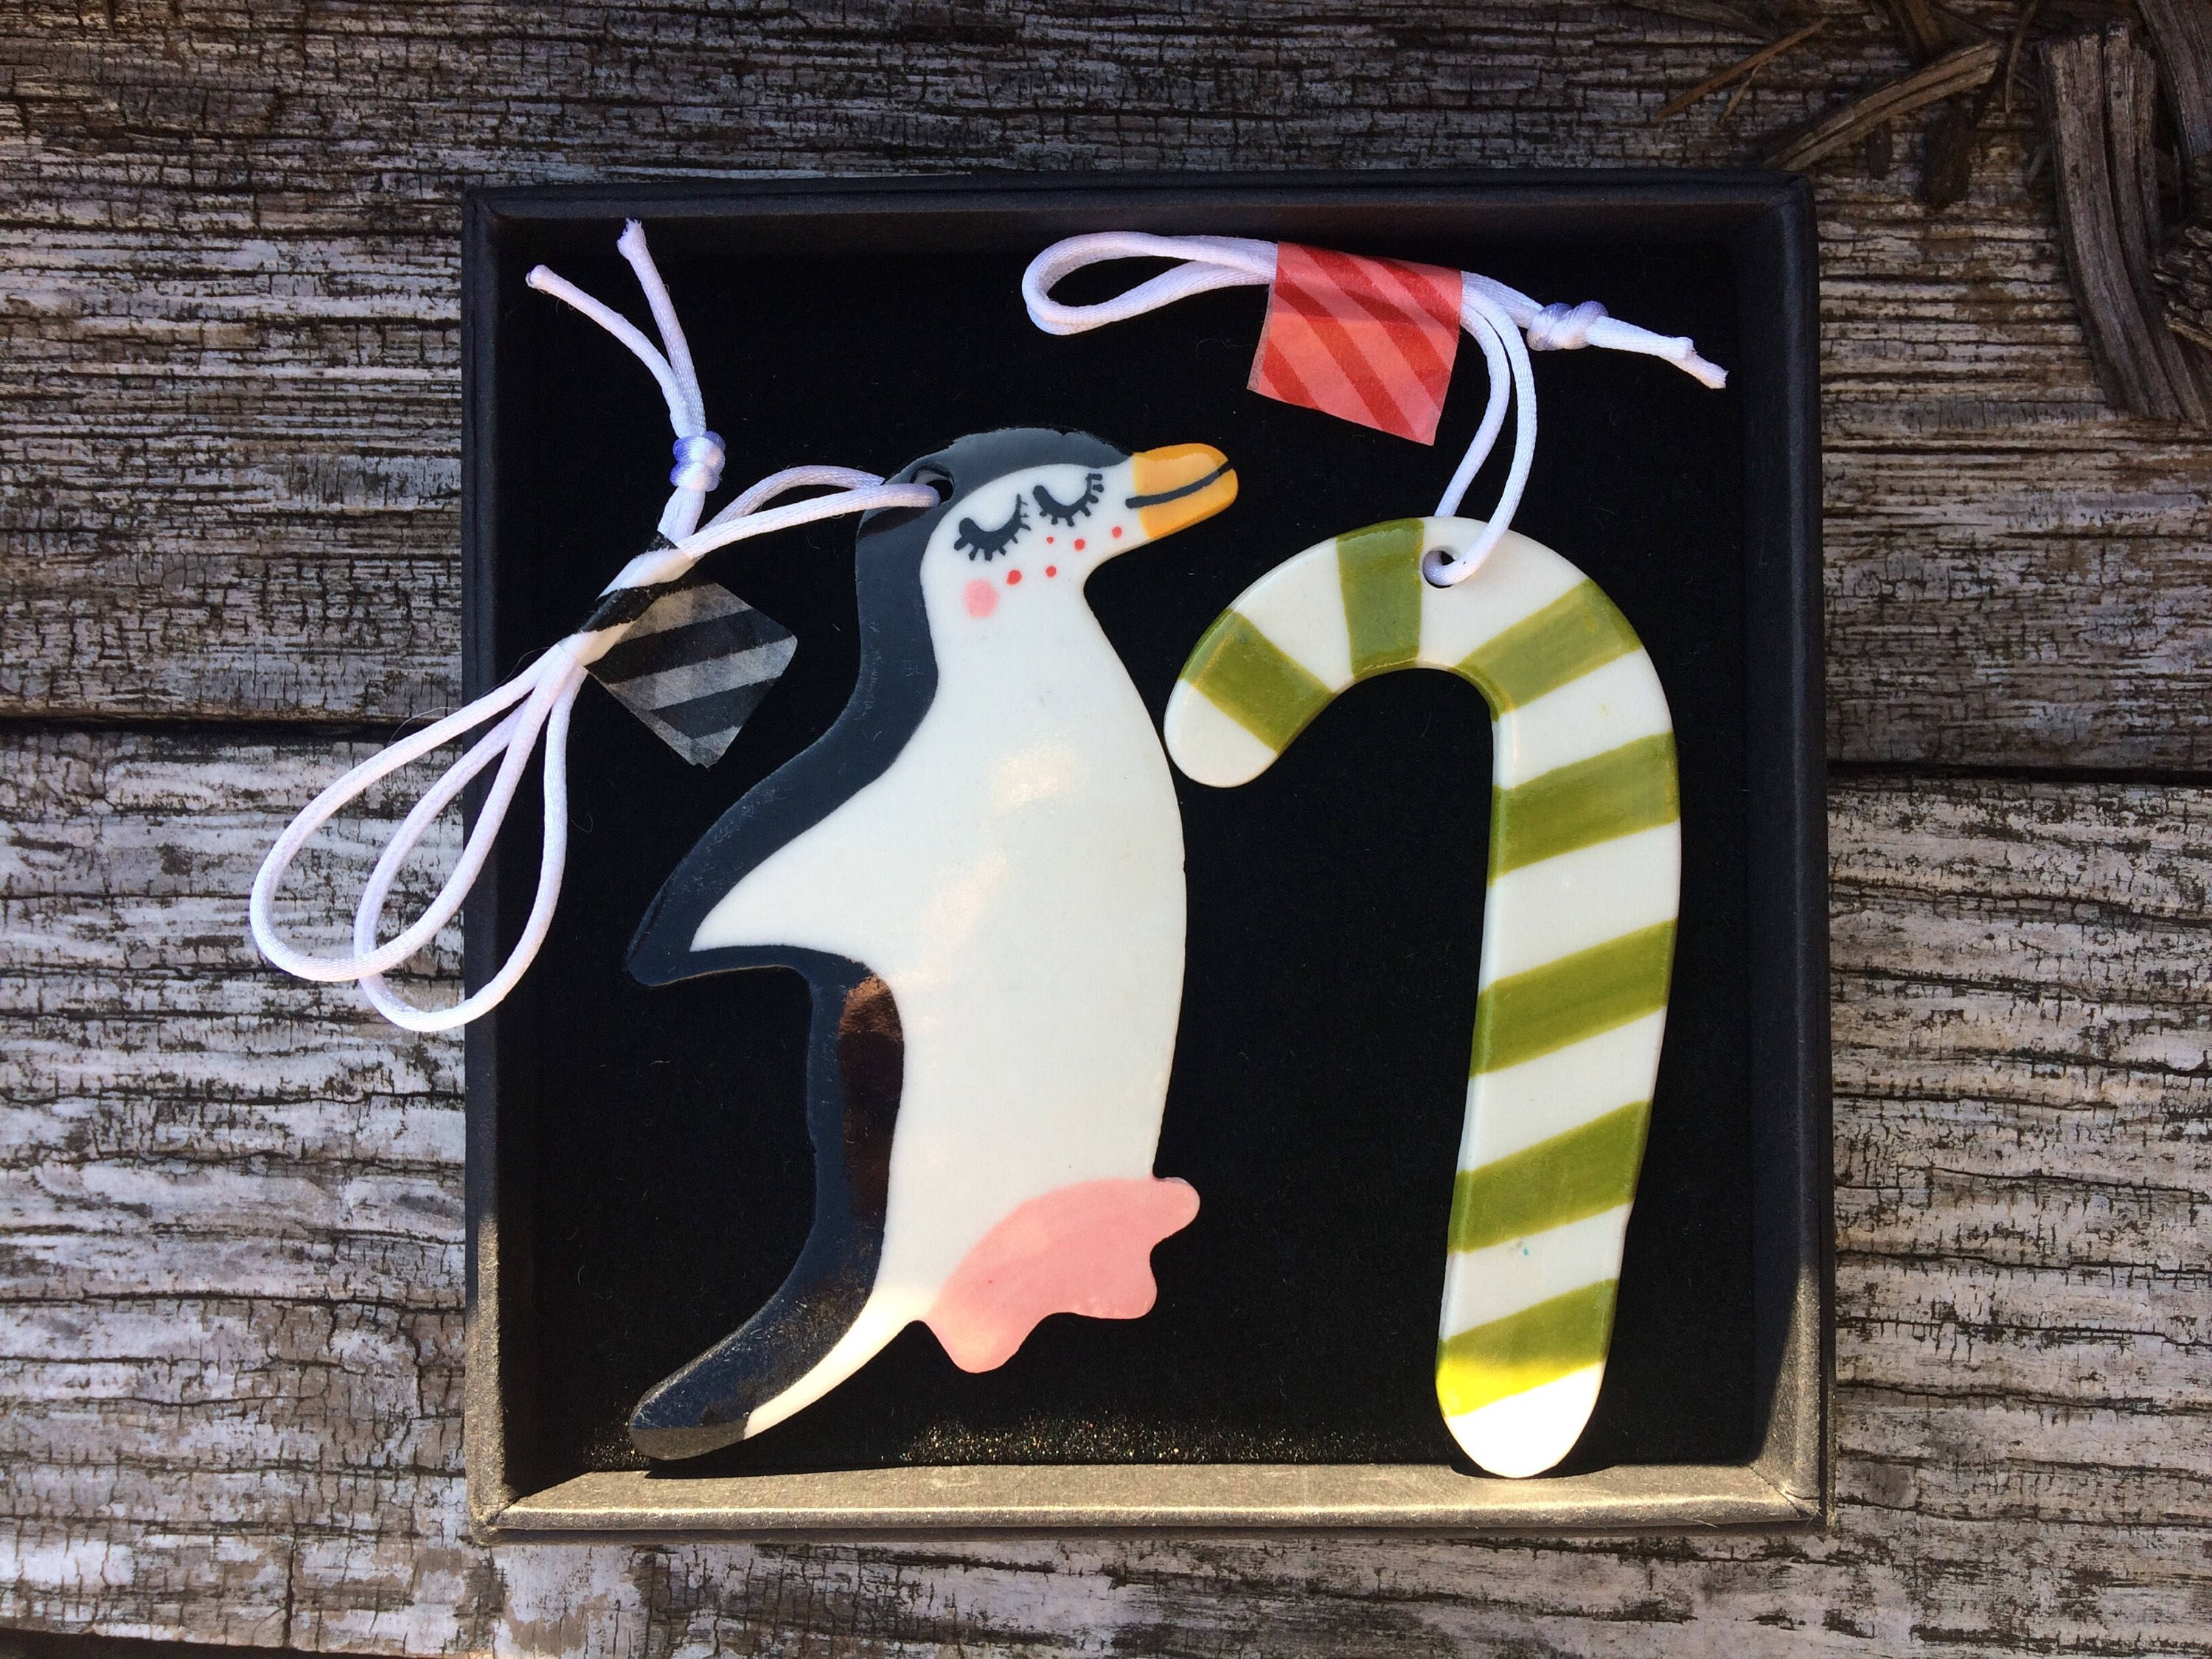 penguin and candy cane ceramic decorationsporcelain christmas tree ornamentchristmas decorationskitsch decorationshandmade in wales uk